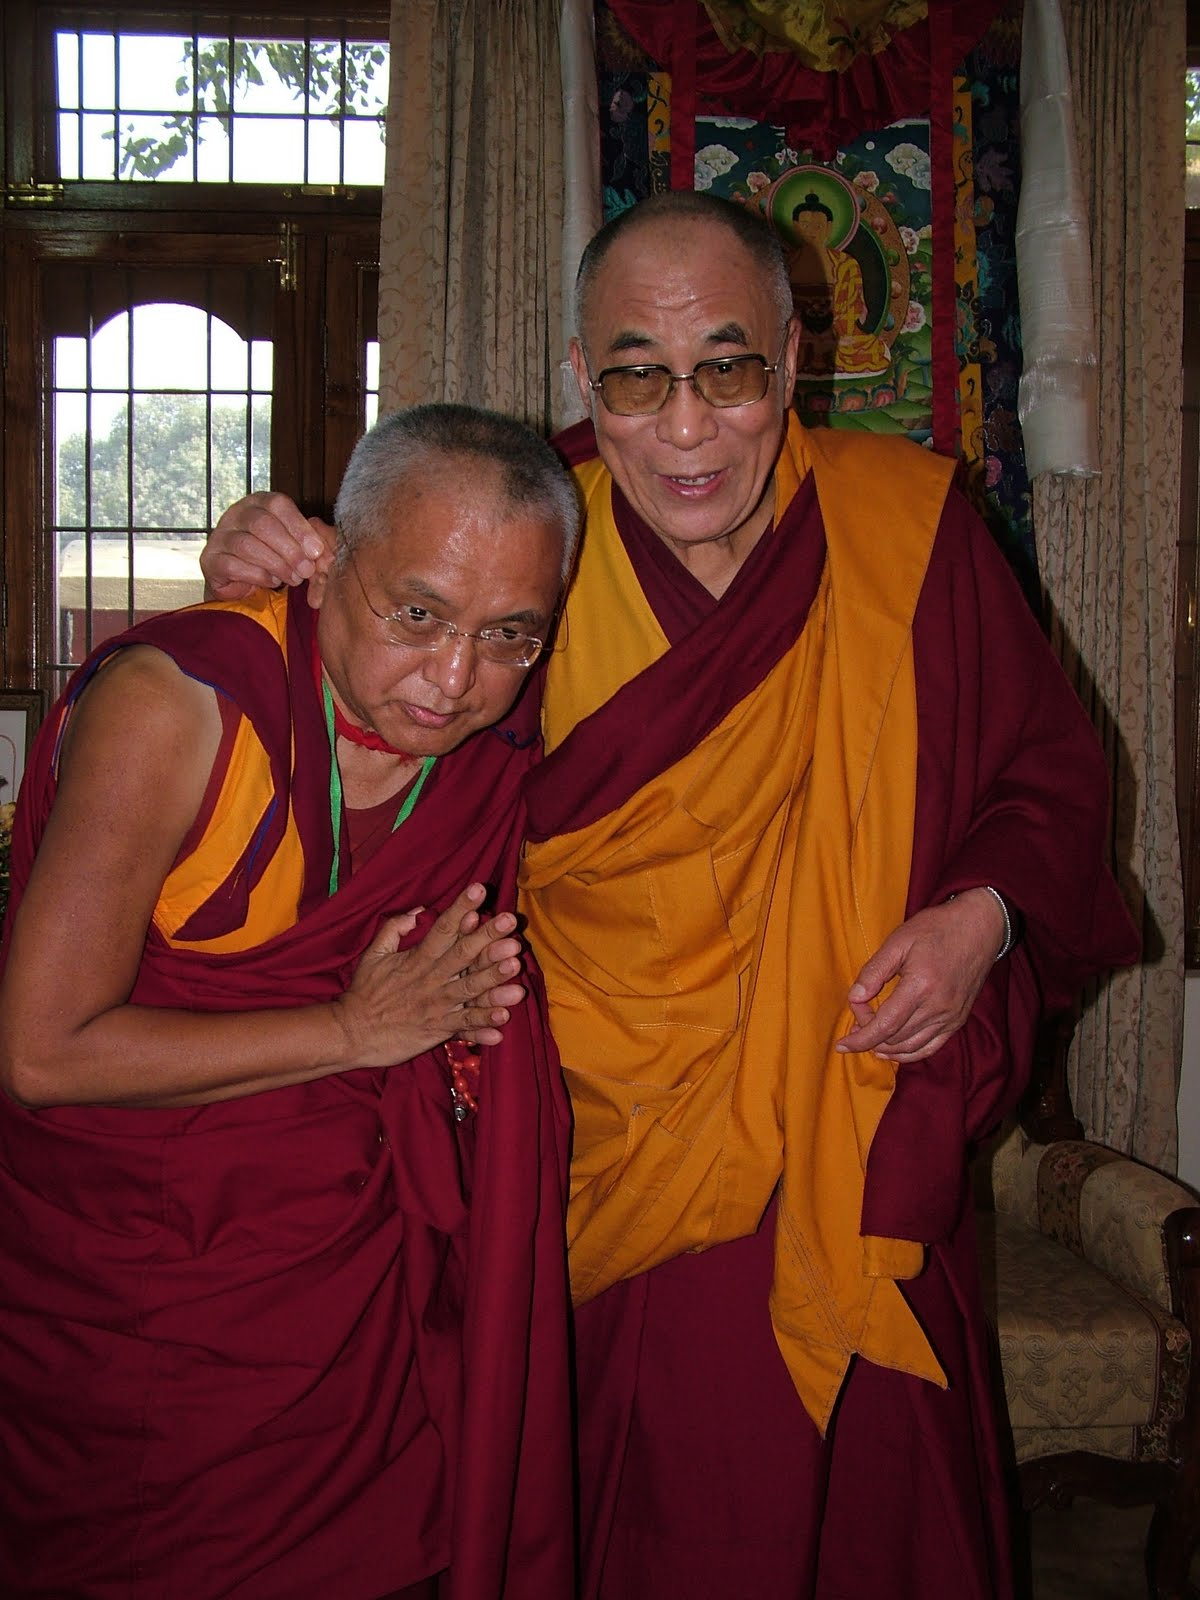 Lama Zopa Rinpoche with His Holiness the Dalai Lama, just before long life puja offered in Saranath January 2008.